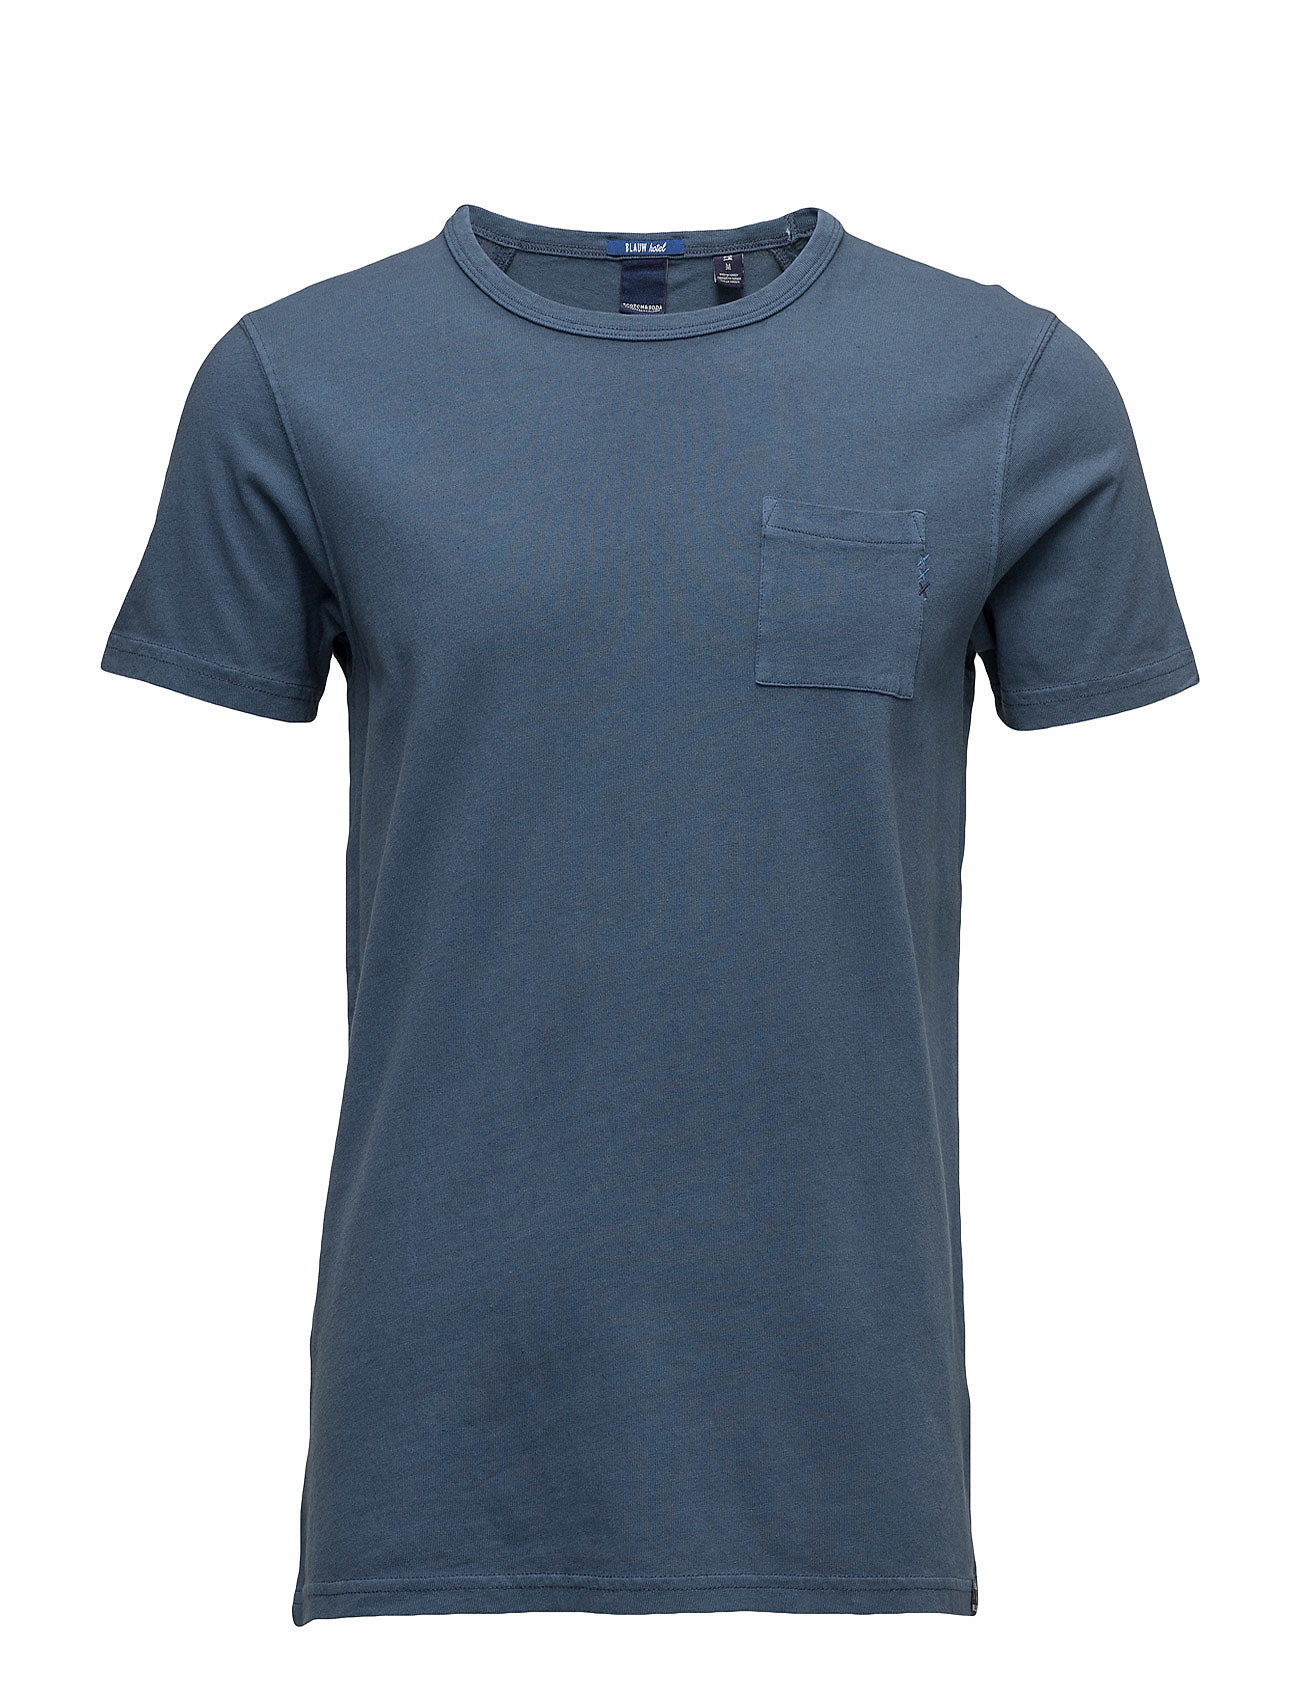 Ams Blauw Regular Fit Tee In Autumn Colours With Wash Effect Scotch & Soda T-shirts til Mænd i